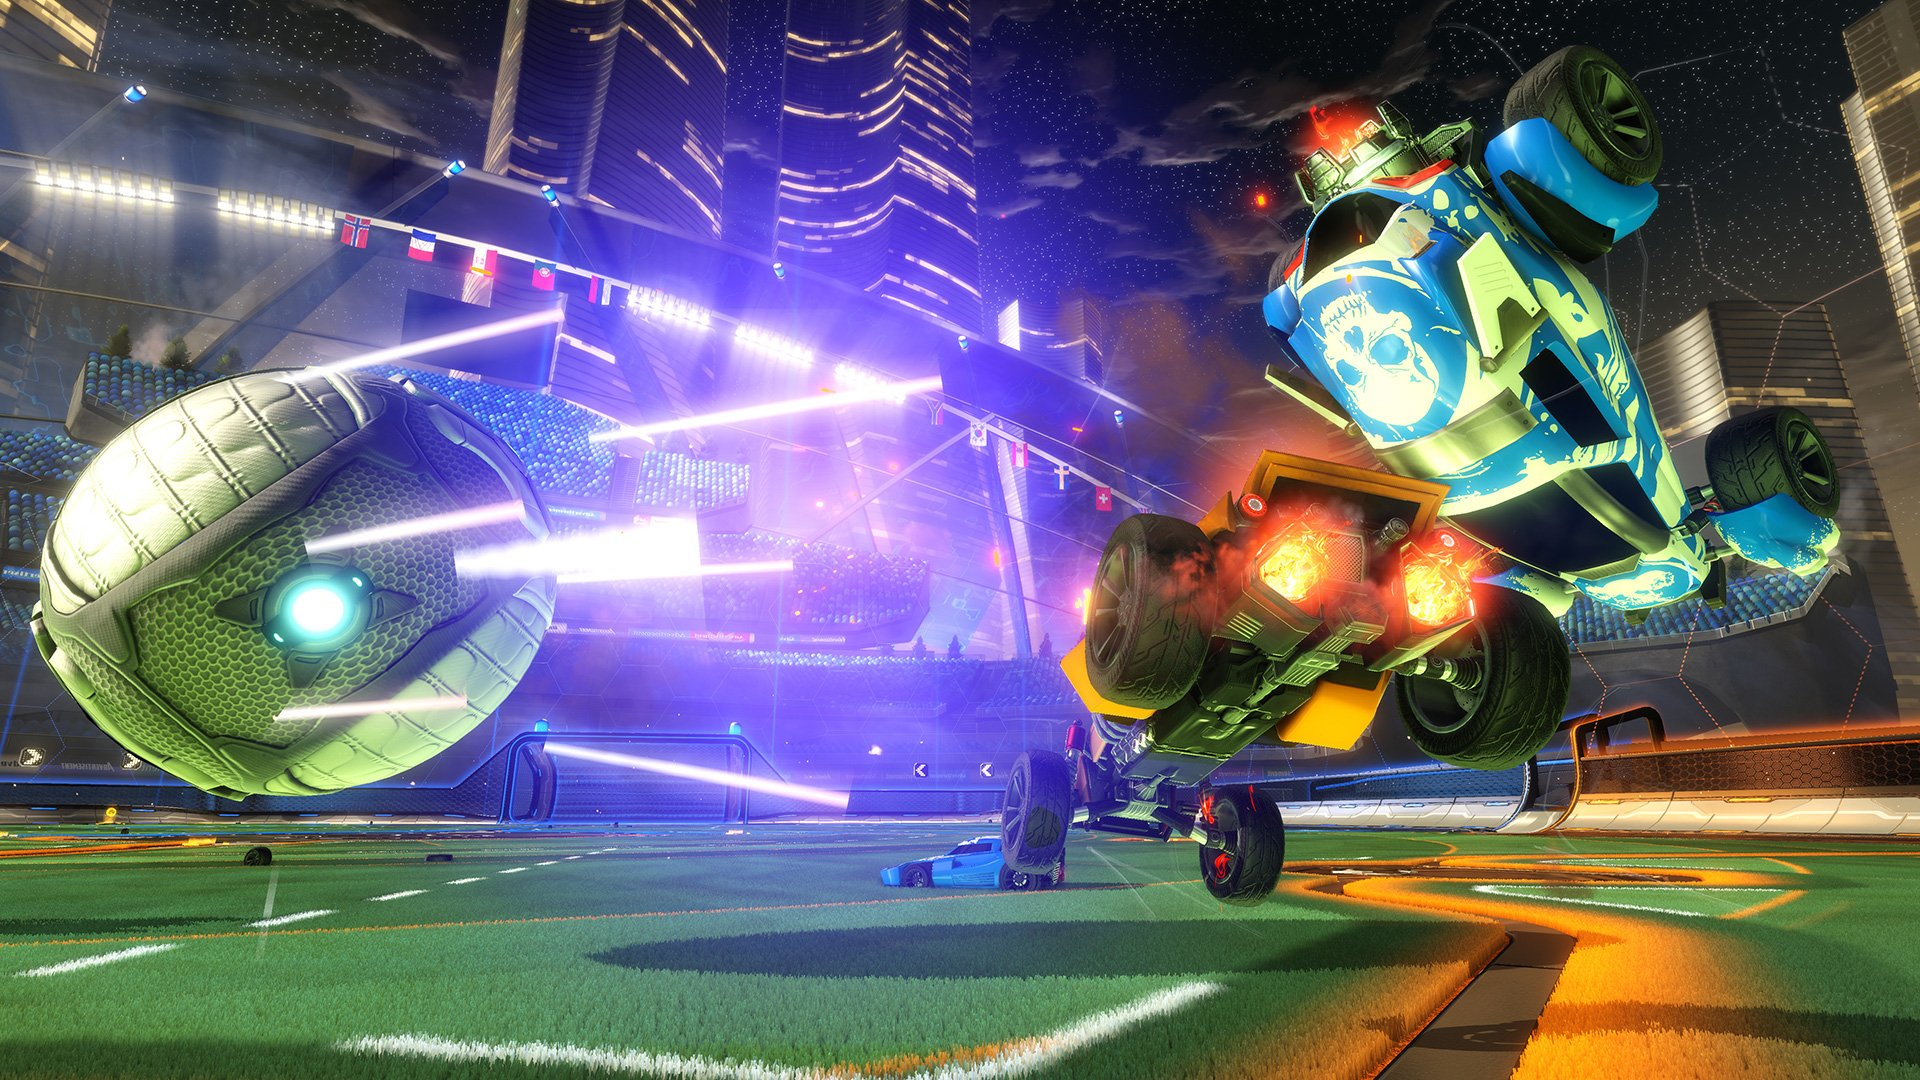 Rocket League Fondo De Pantalla Hd Fondo De Escritorio